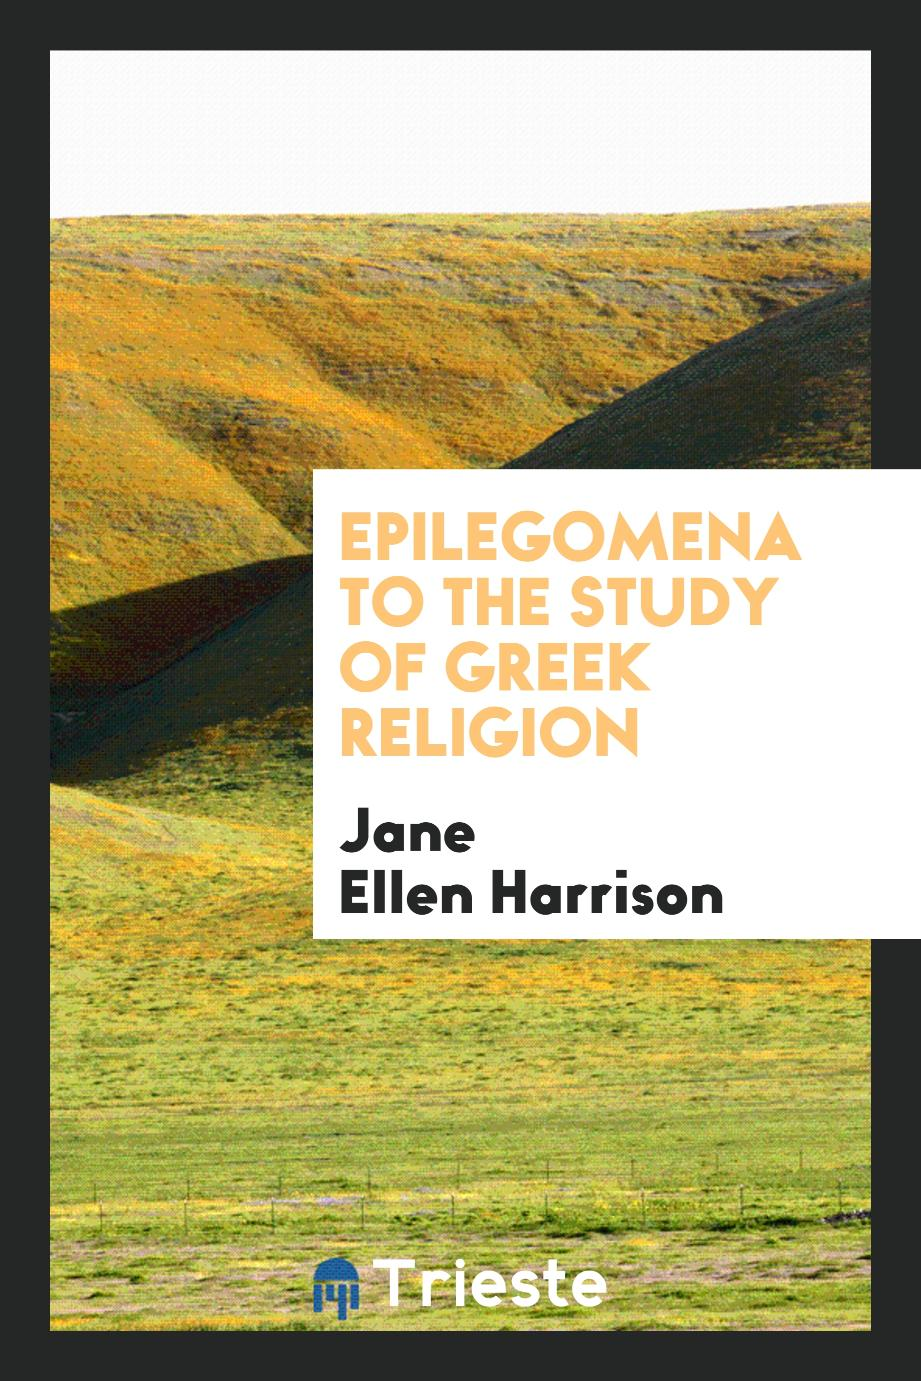 Epilegomena to the Study of Greek Religion